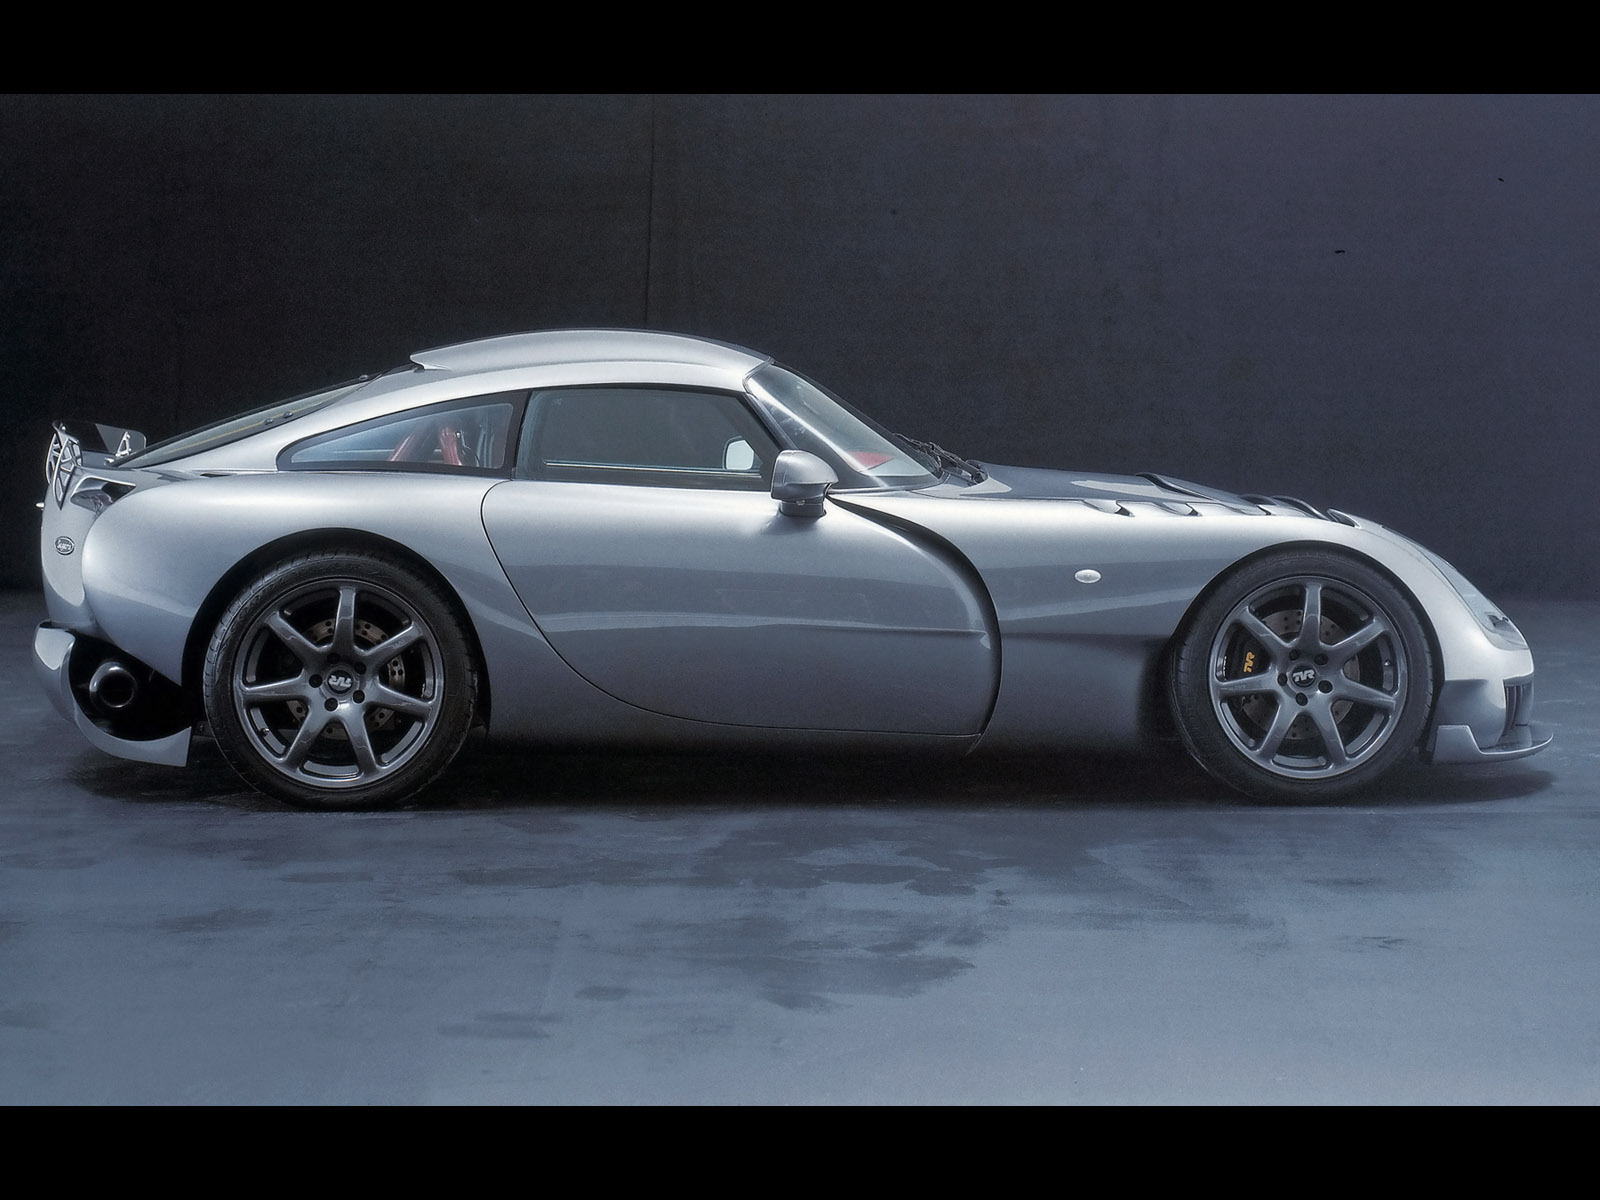 Tvr s photo - 3